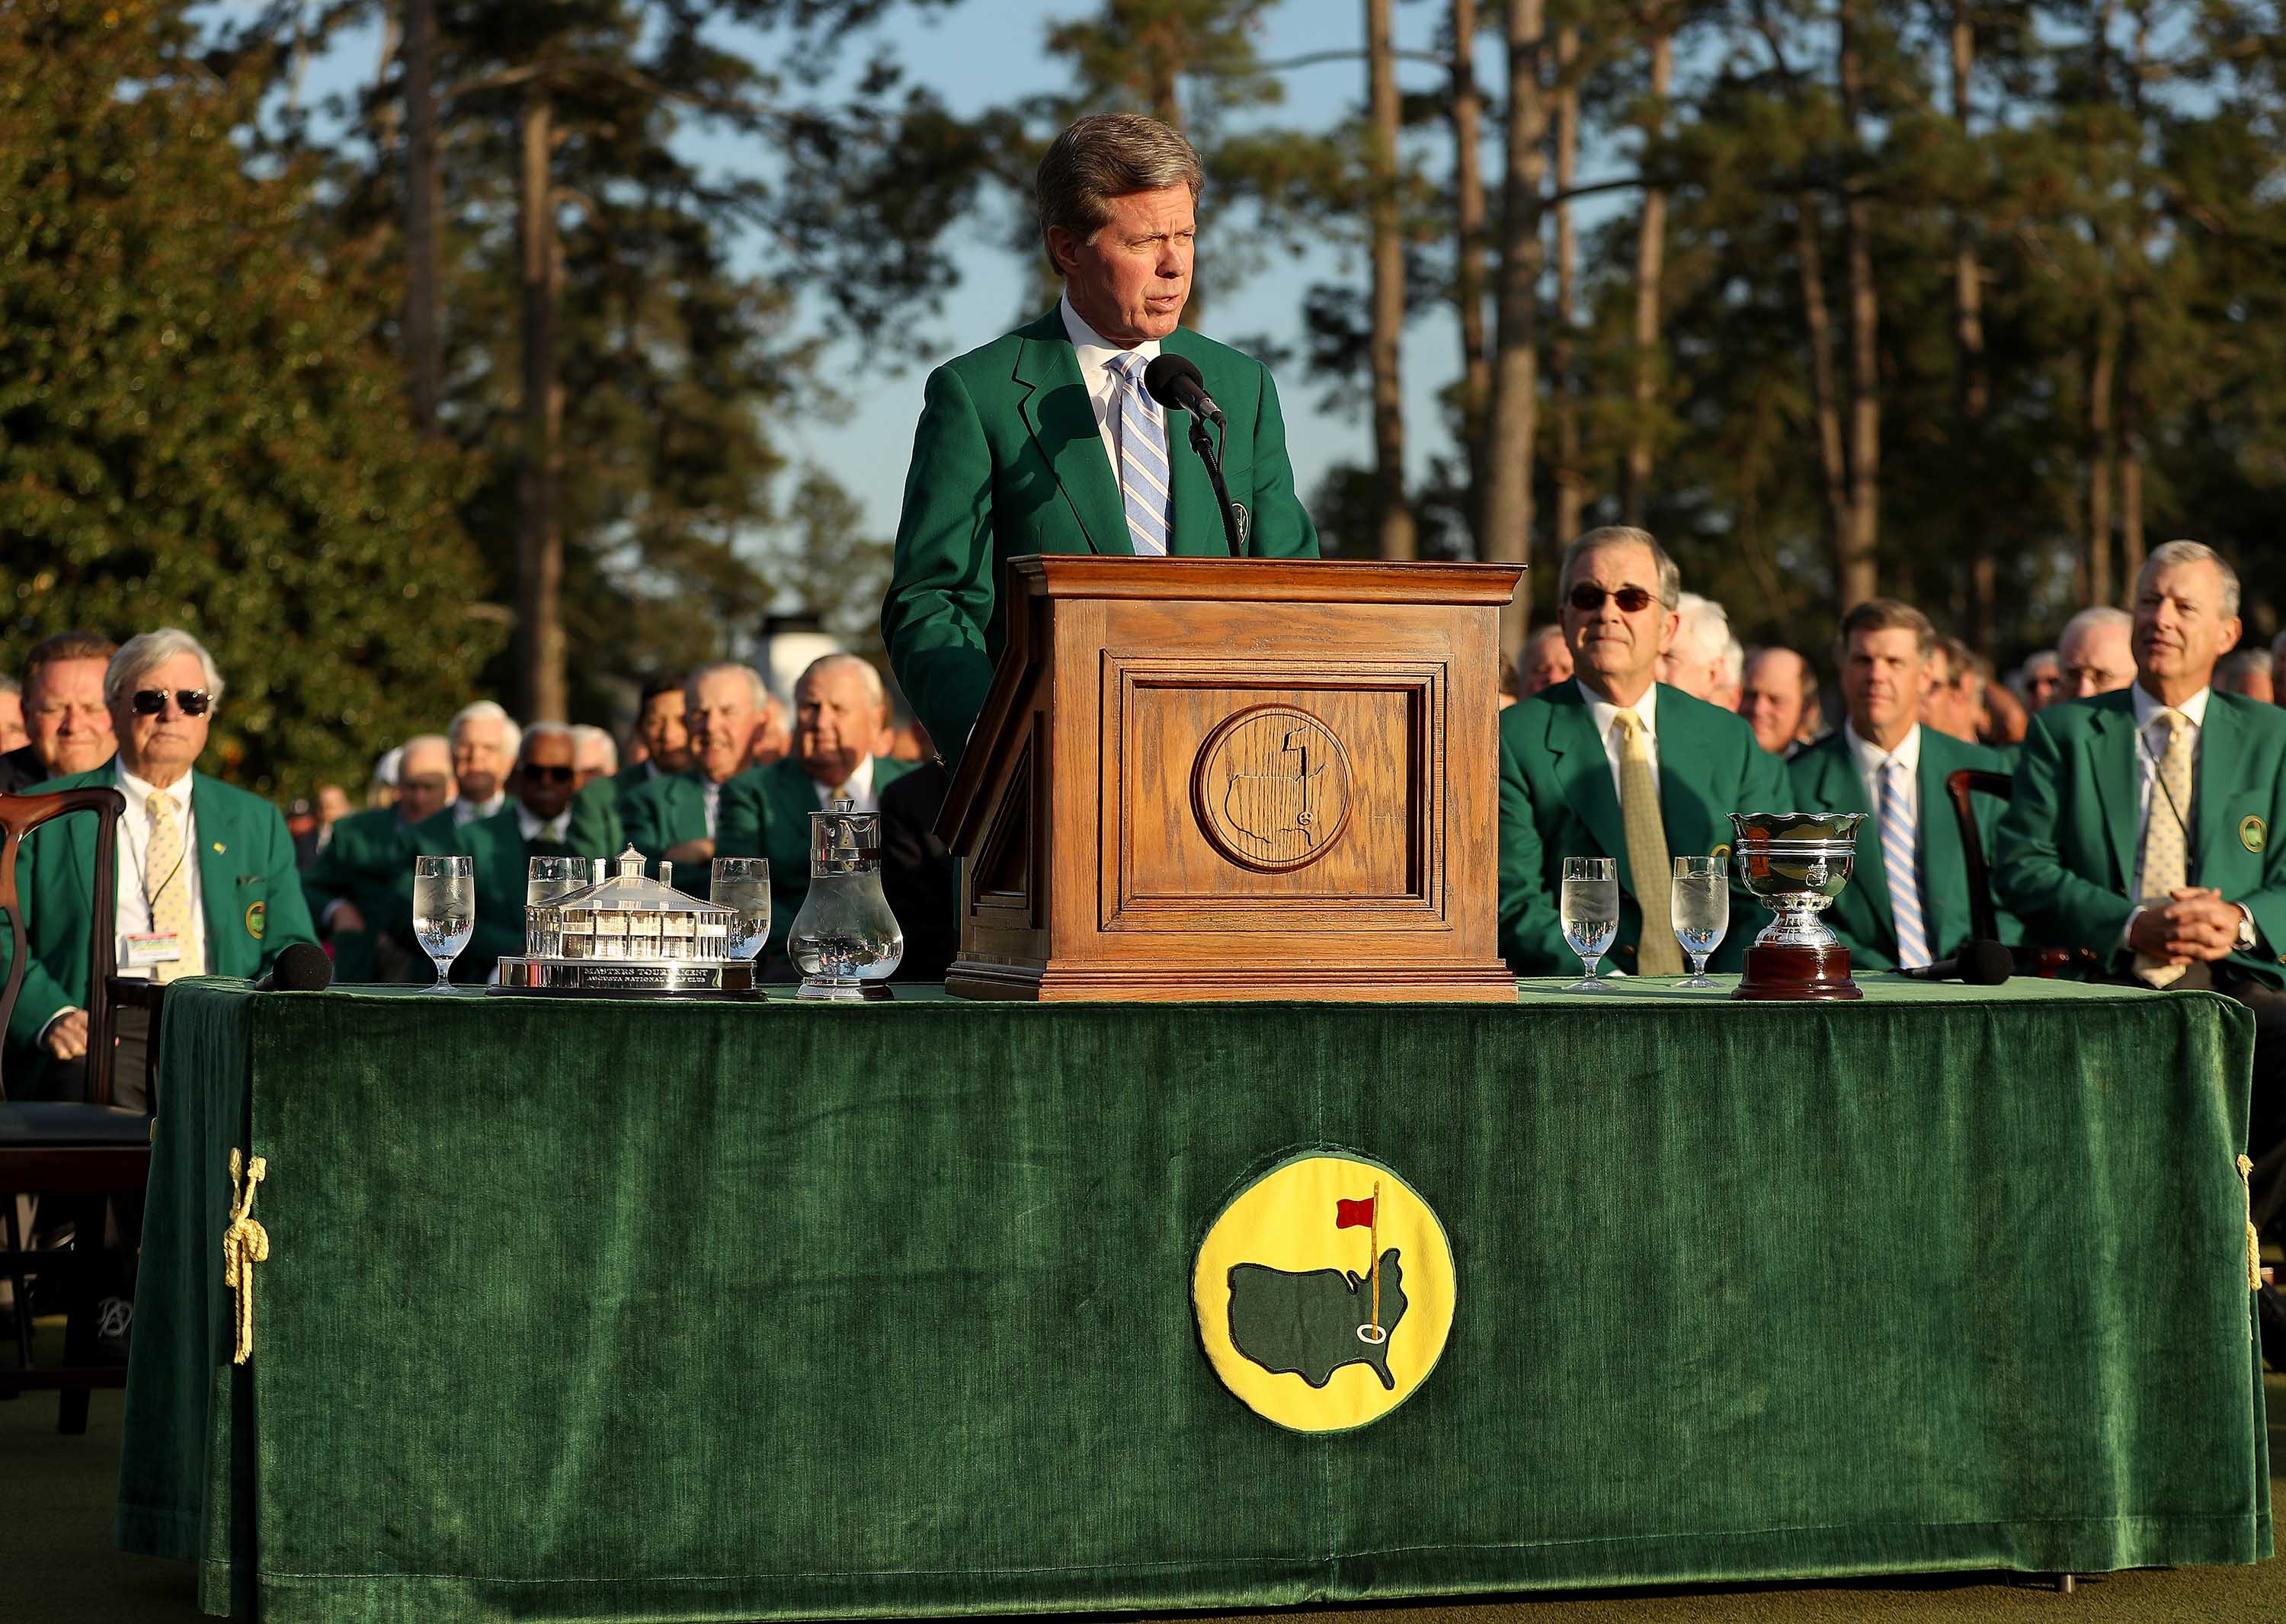 Fred Ridley, Chairman of Augusta National Golf Club, speaks during the green jacket ceremony for the 2018 Masters Tournament in Augusta, Georgia.